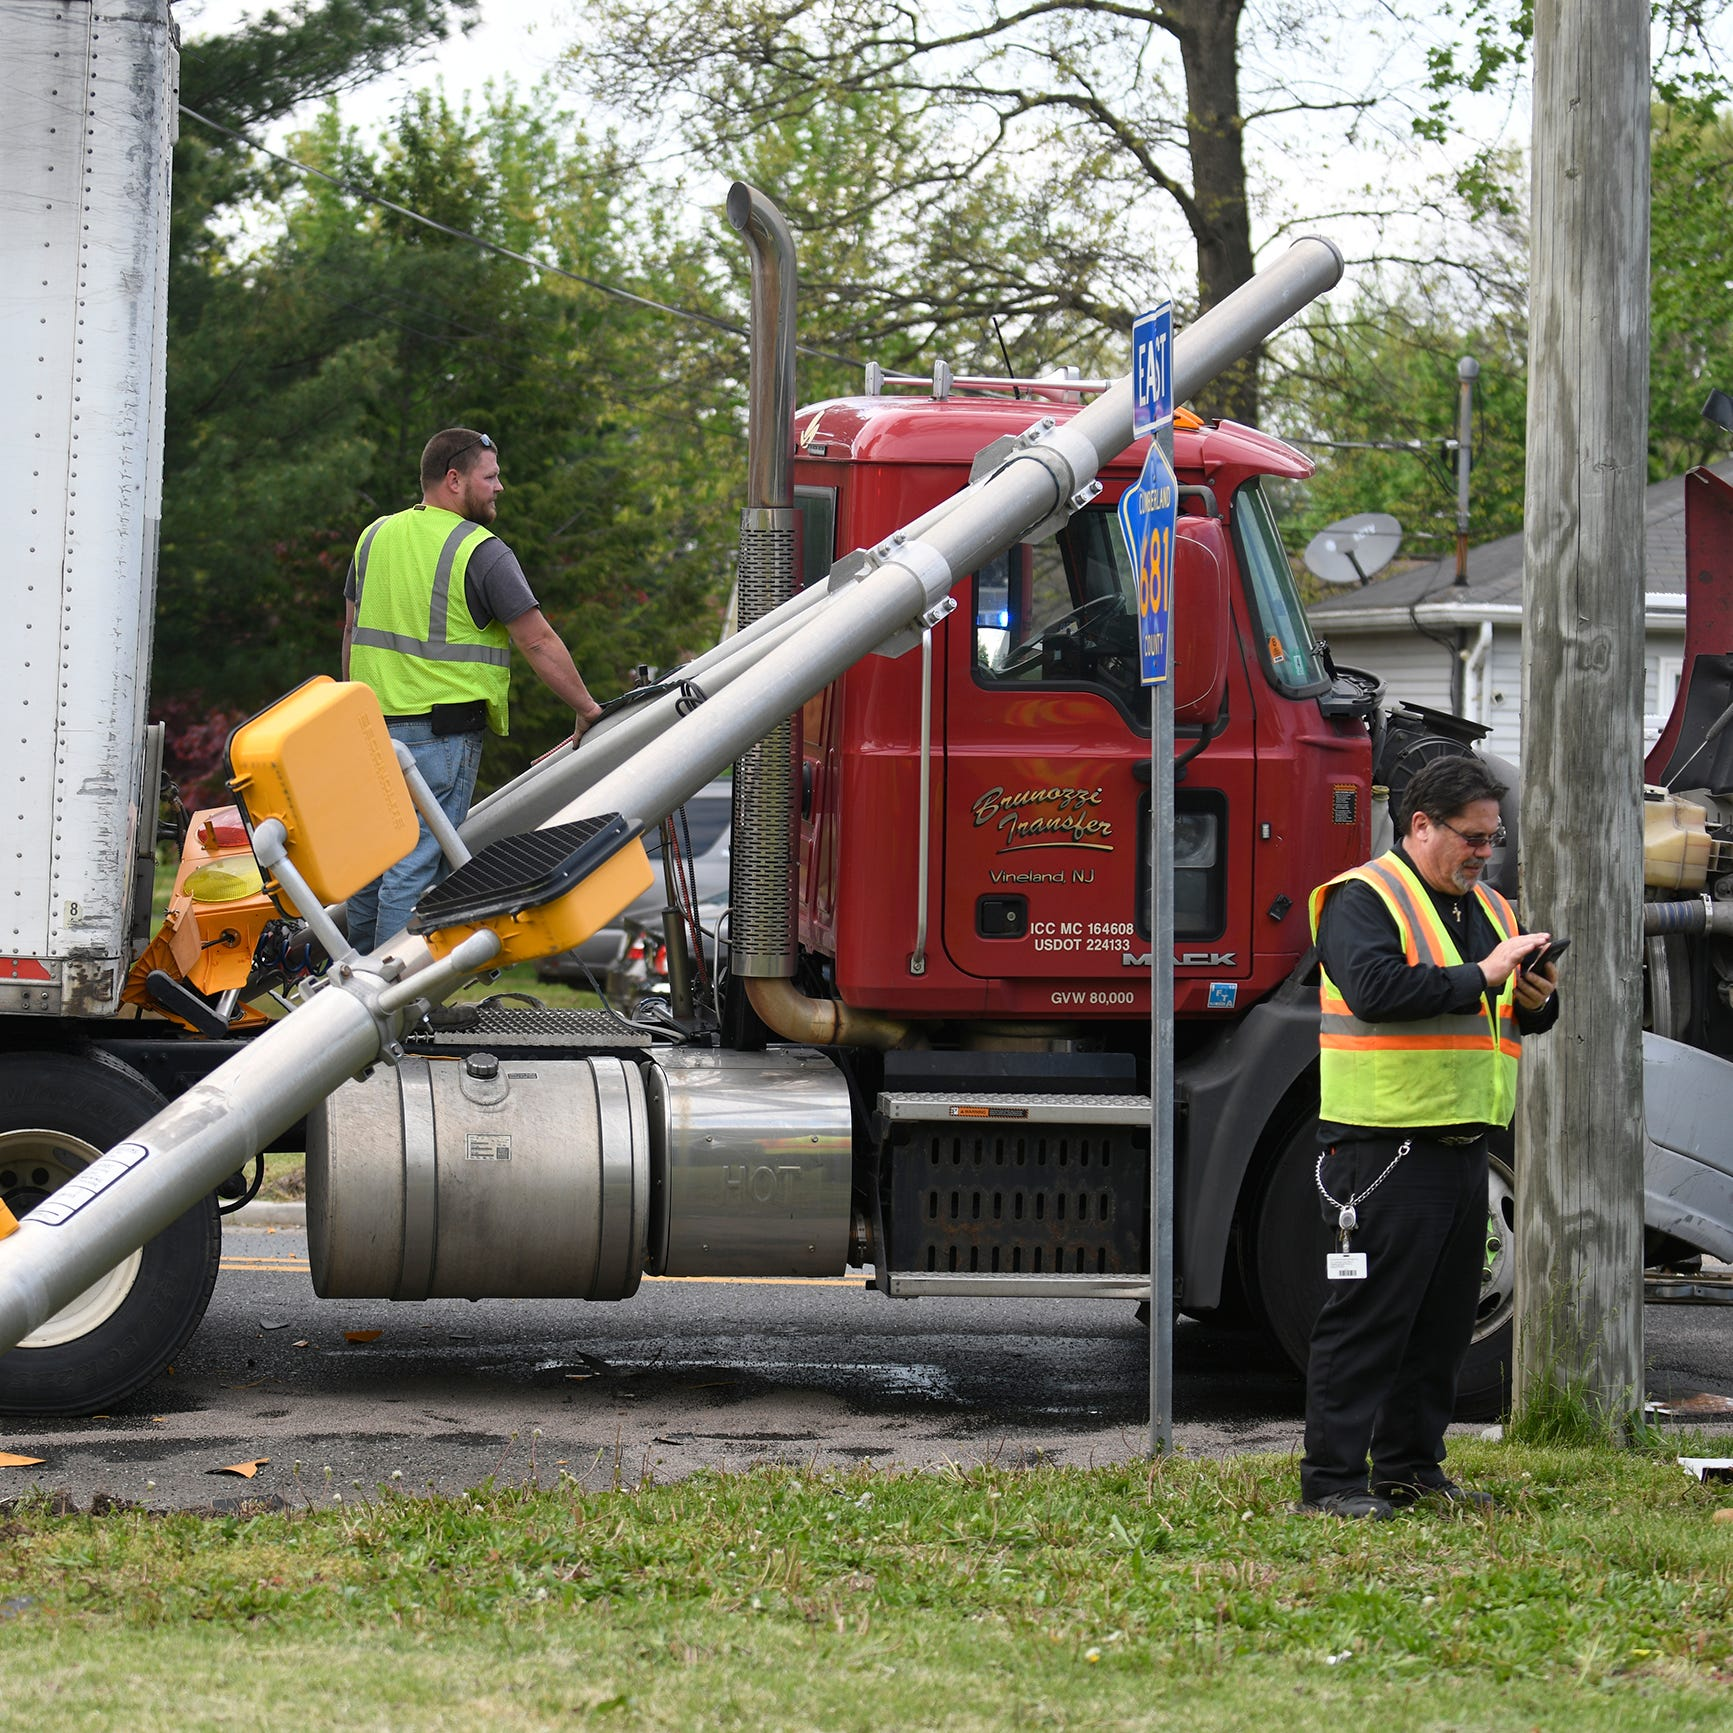 Vineland driver cited after collision with pedestrian, tractor trailer